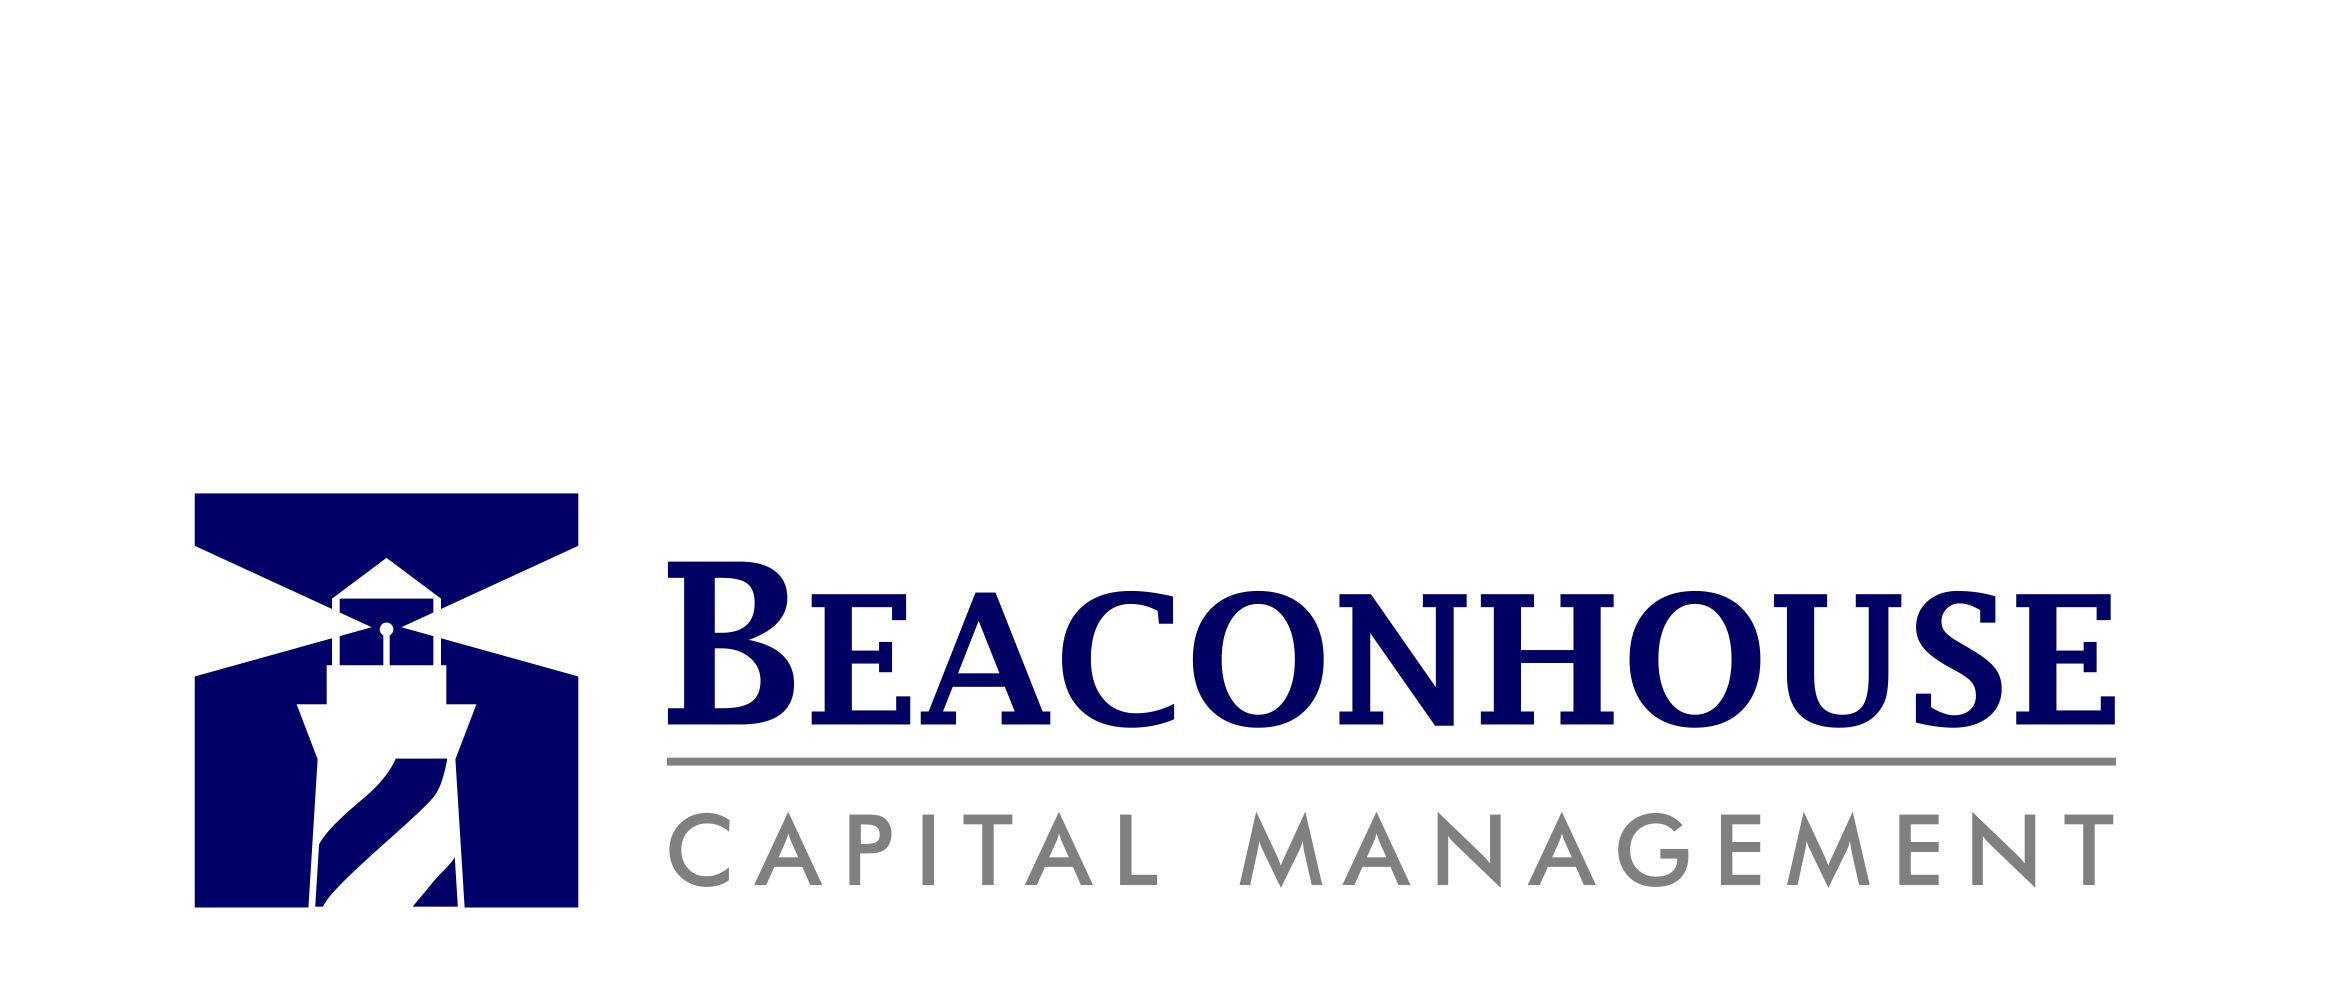 Beaconhouse capital management saquib toor blog - We Provide Capital And Strategic Resources To Management Teams To Grow Their Businesses And Drive